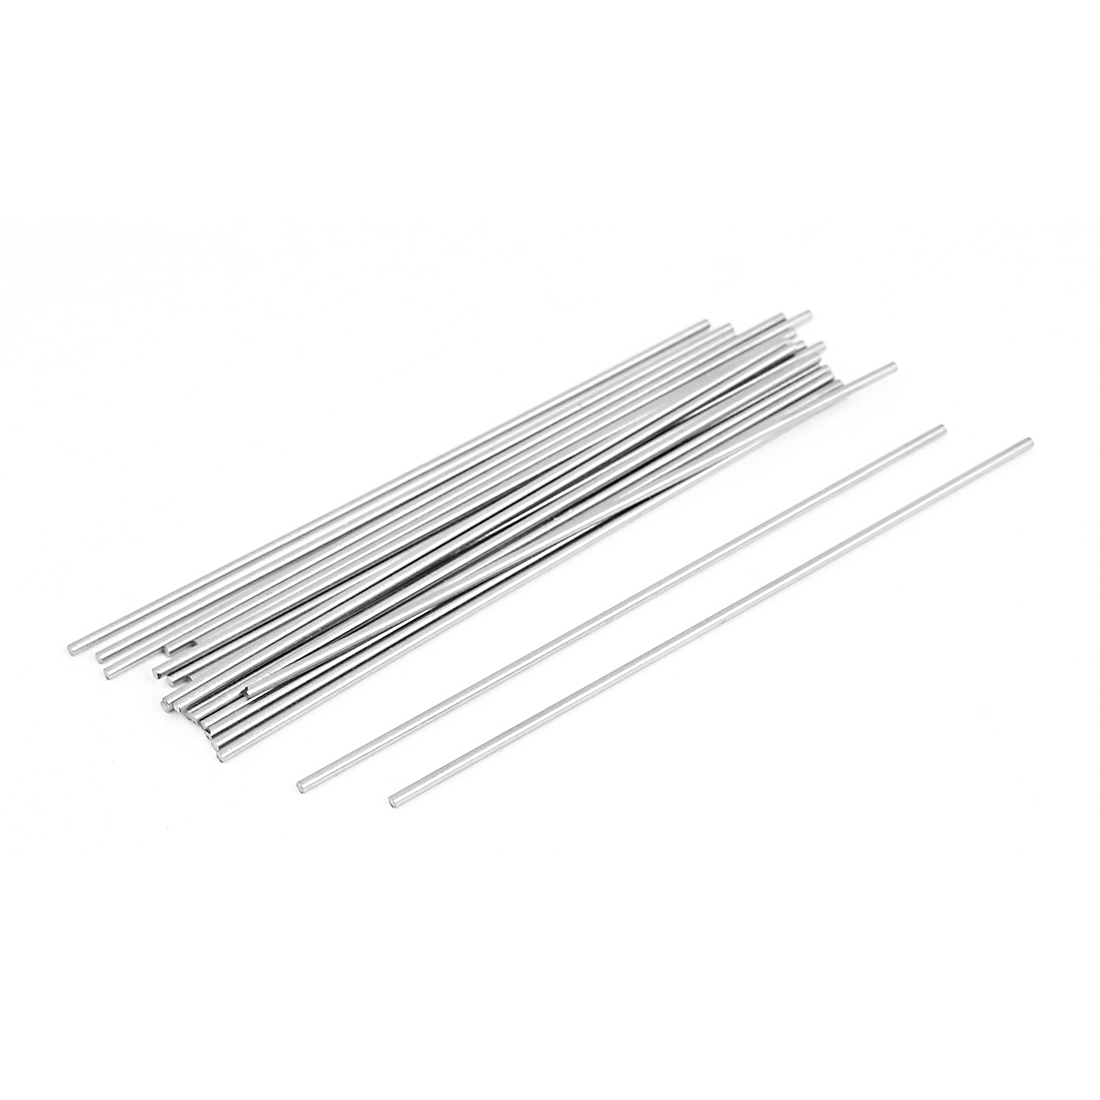 20 Pcs Steel Rod Bar Round Stock Lathe Tools 1.5mm Dia 100mm Length